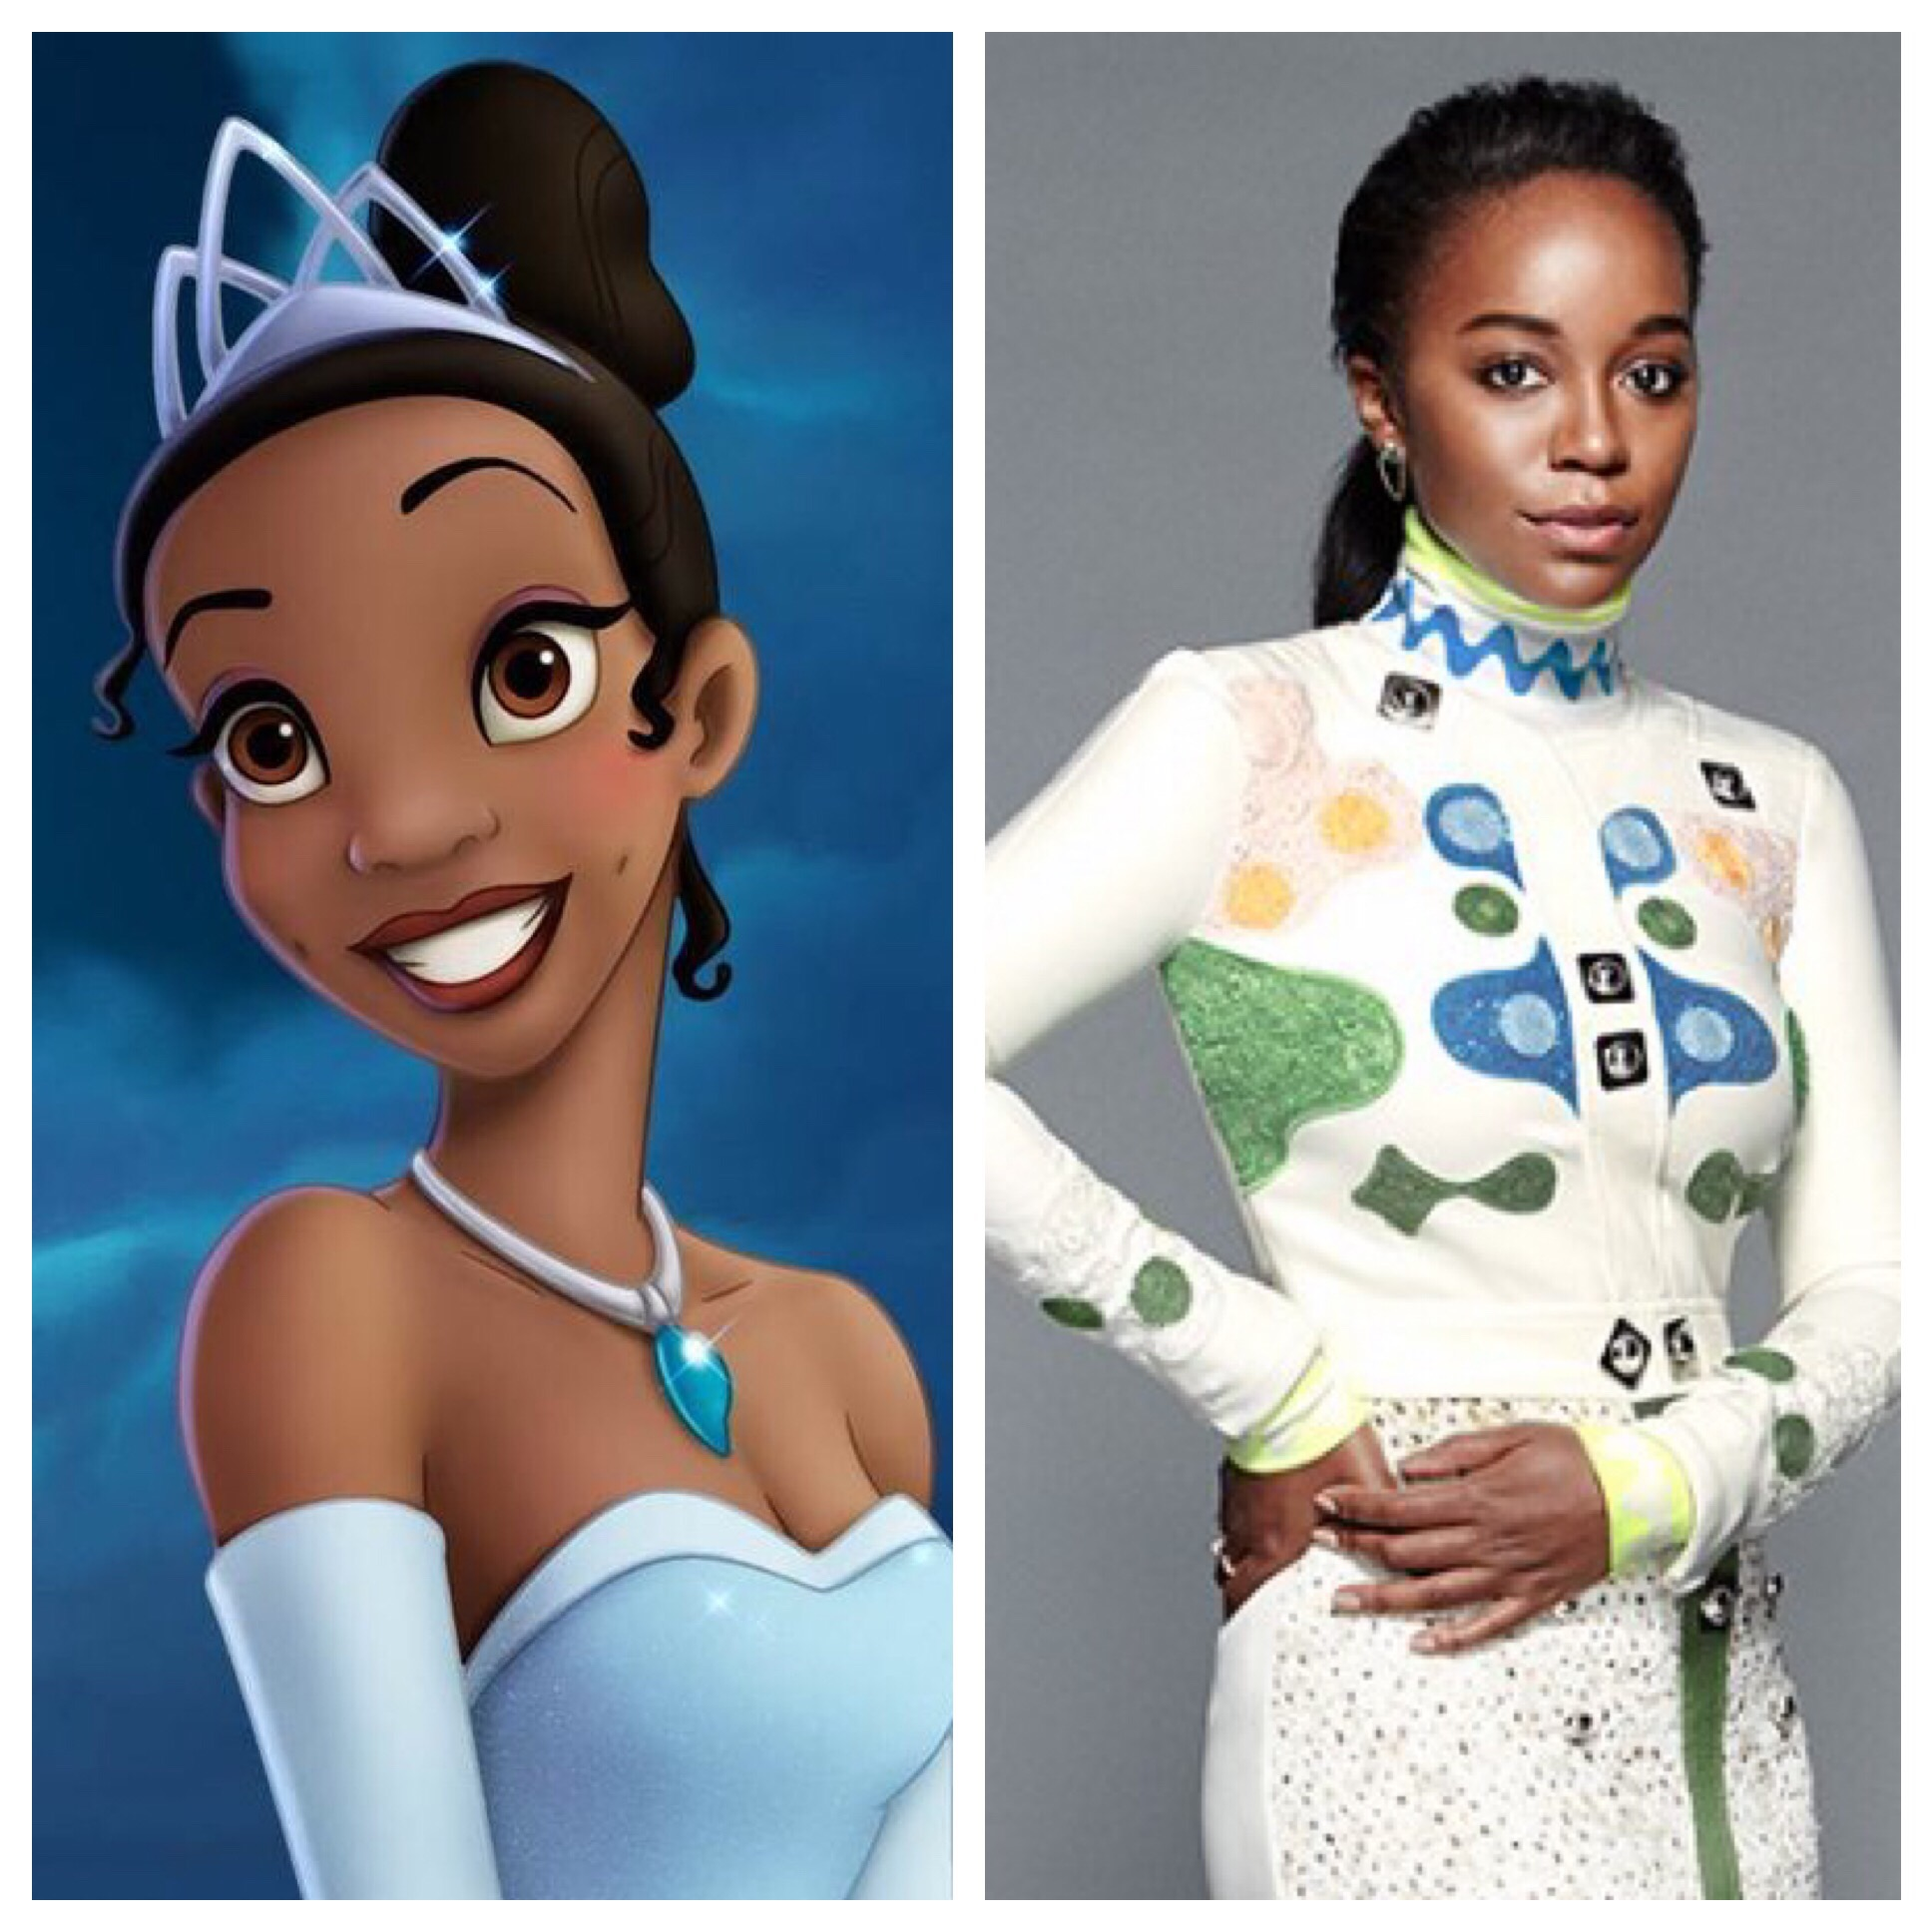 The Princess And The Frog Fancast Geeks Of Color